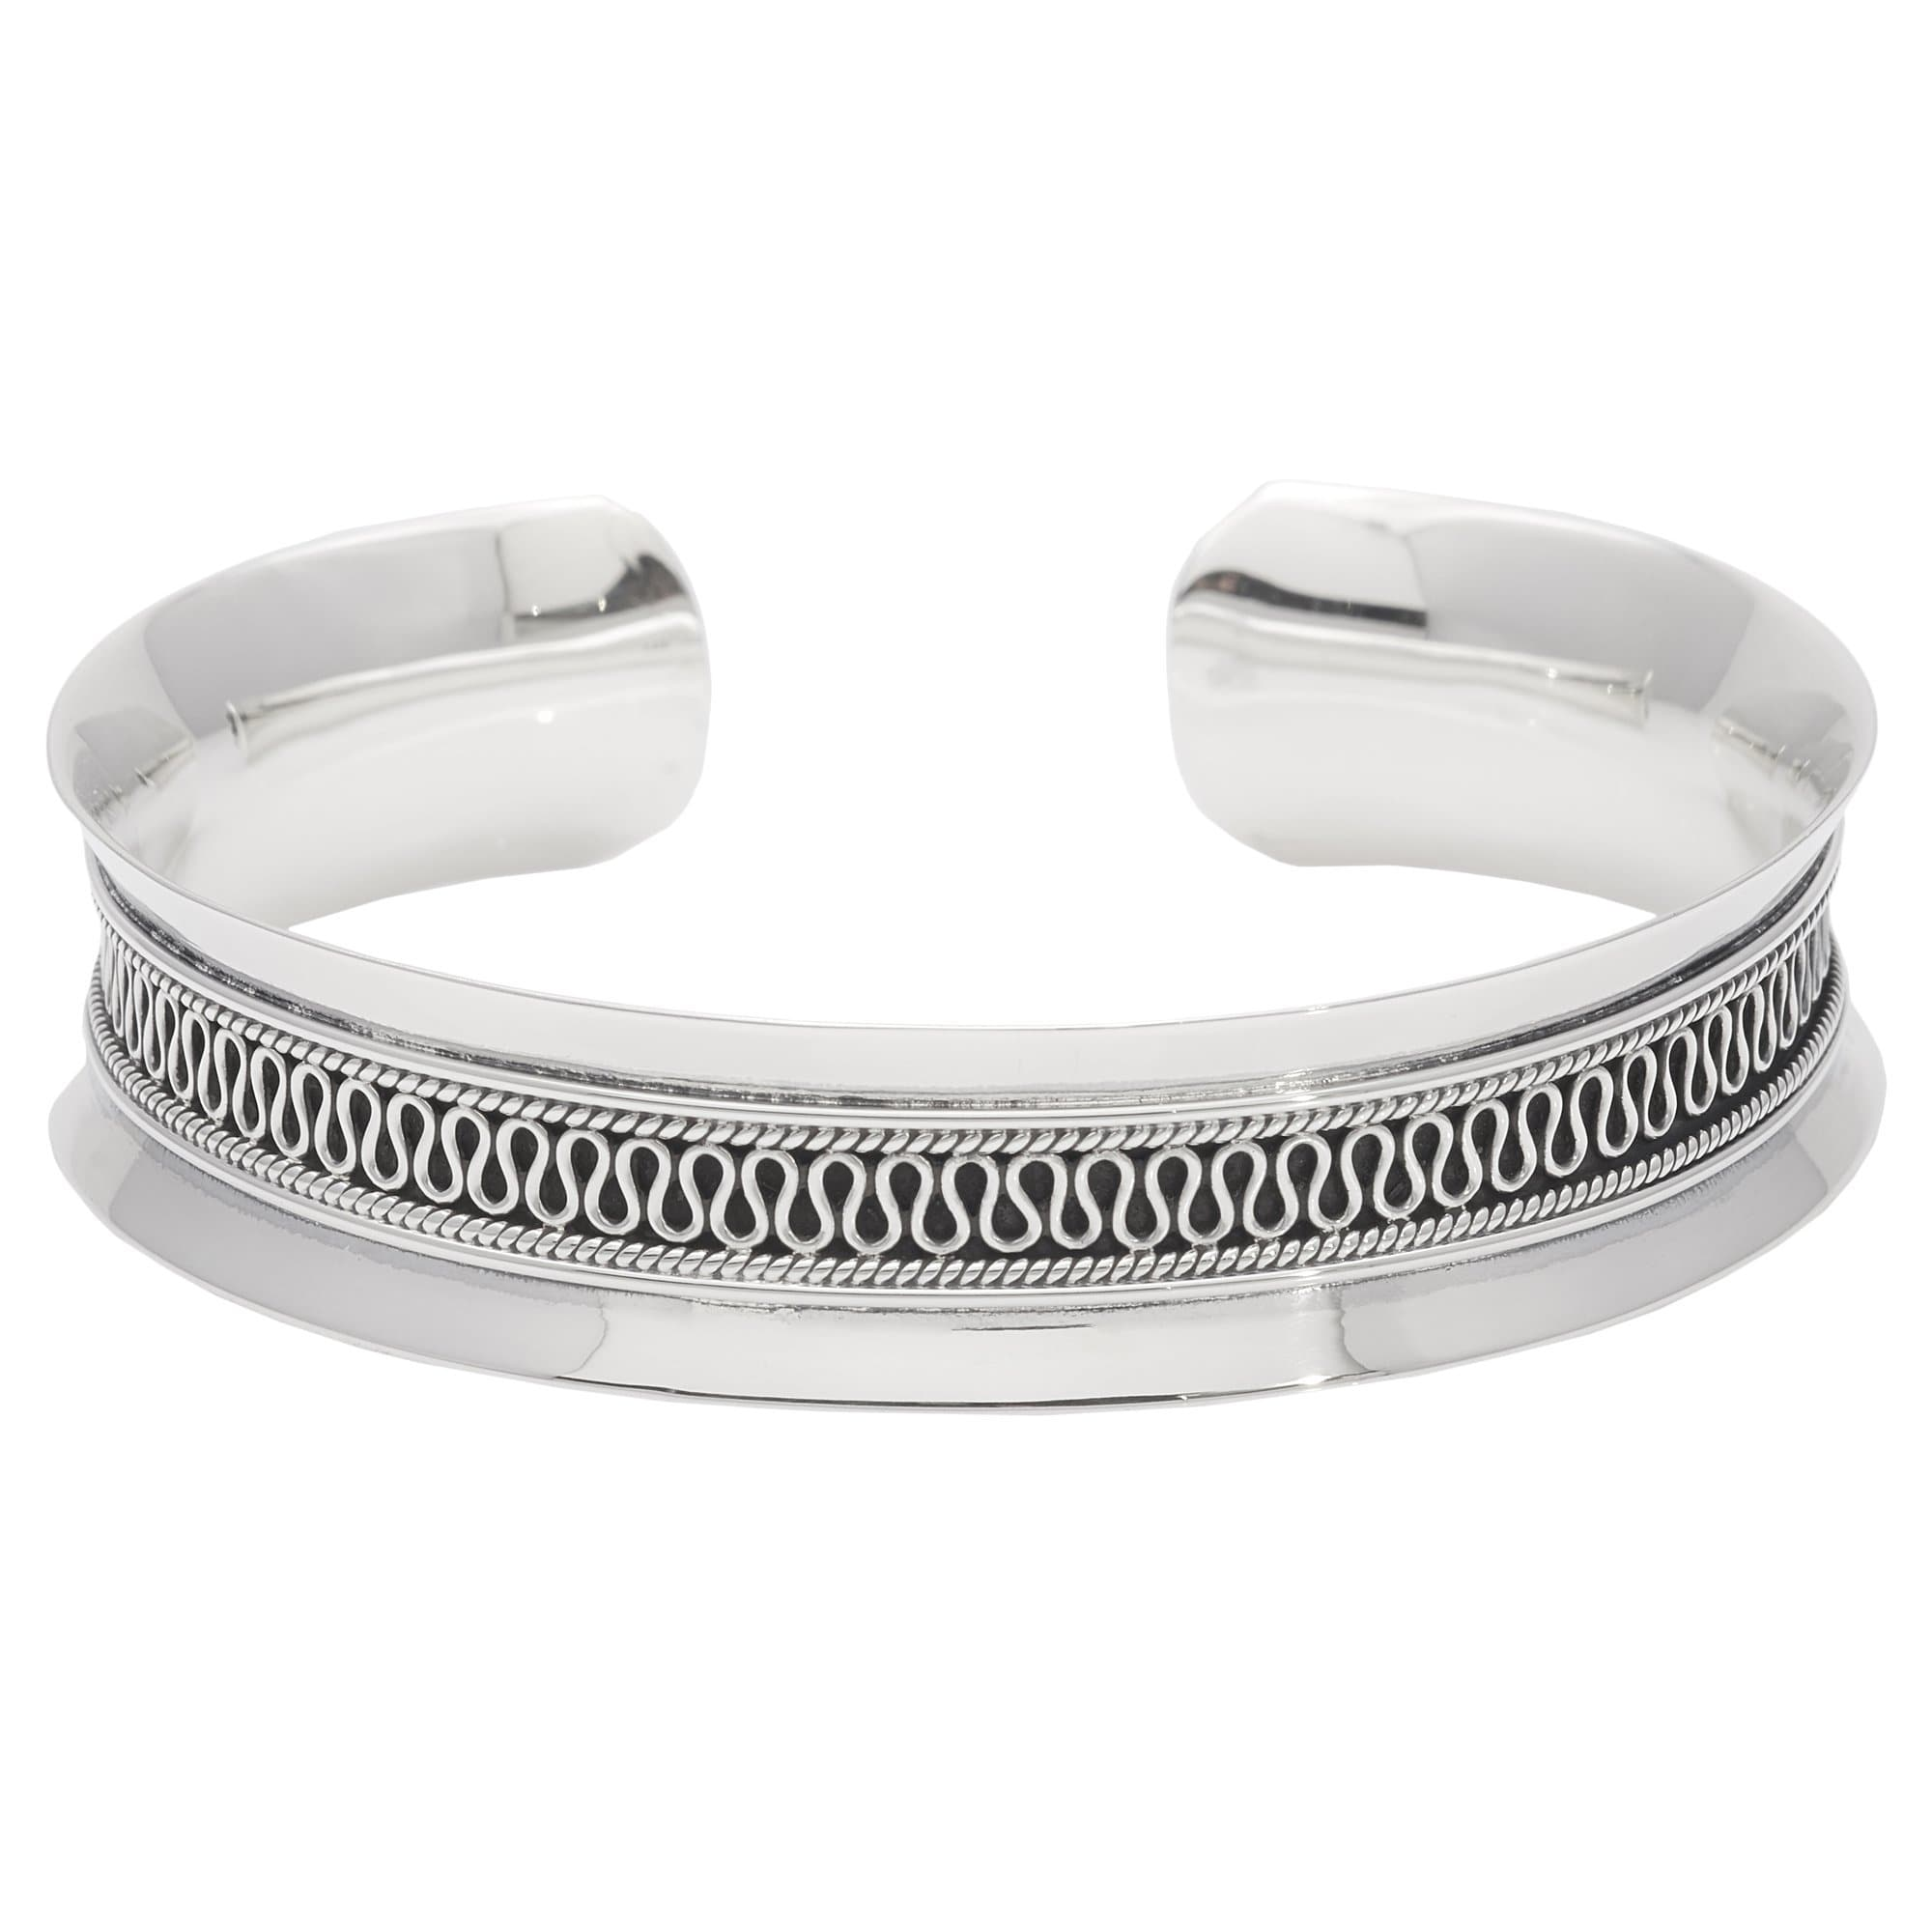 sterling muehling shop simple bangle bracelets ted bangles silver august plain front bracelet